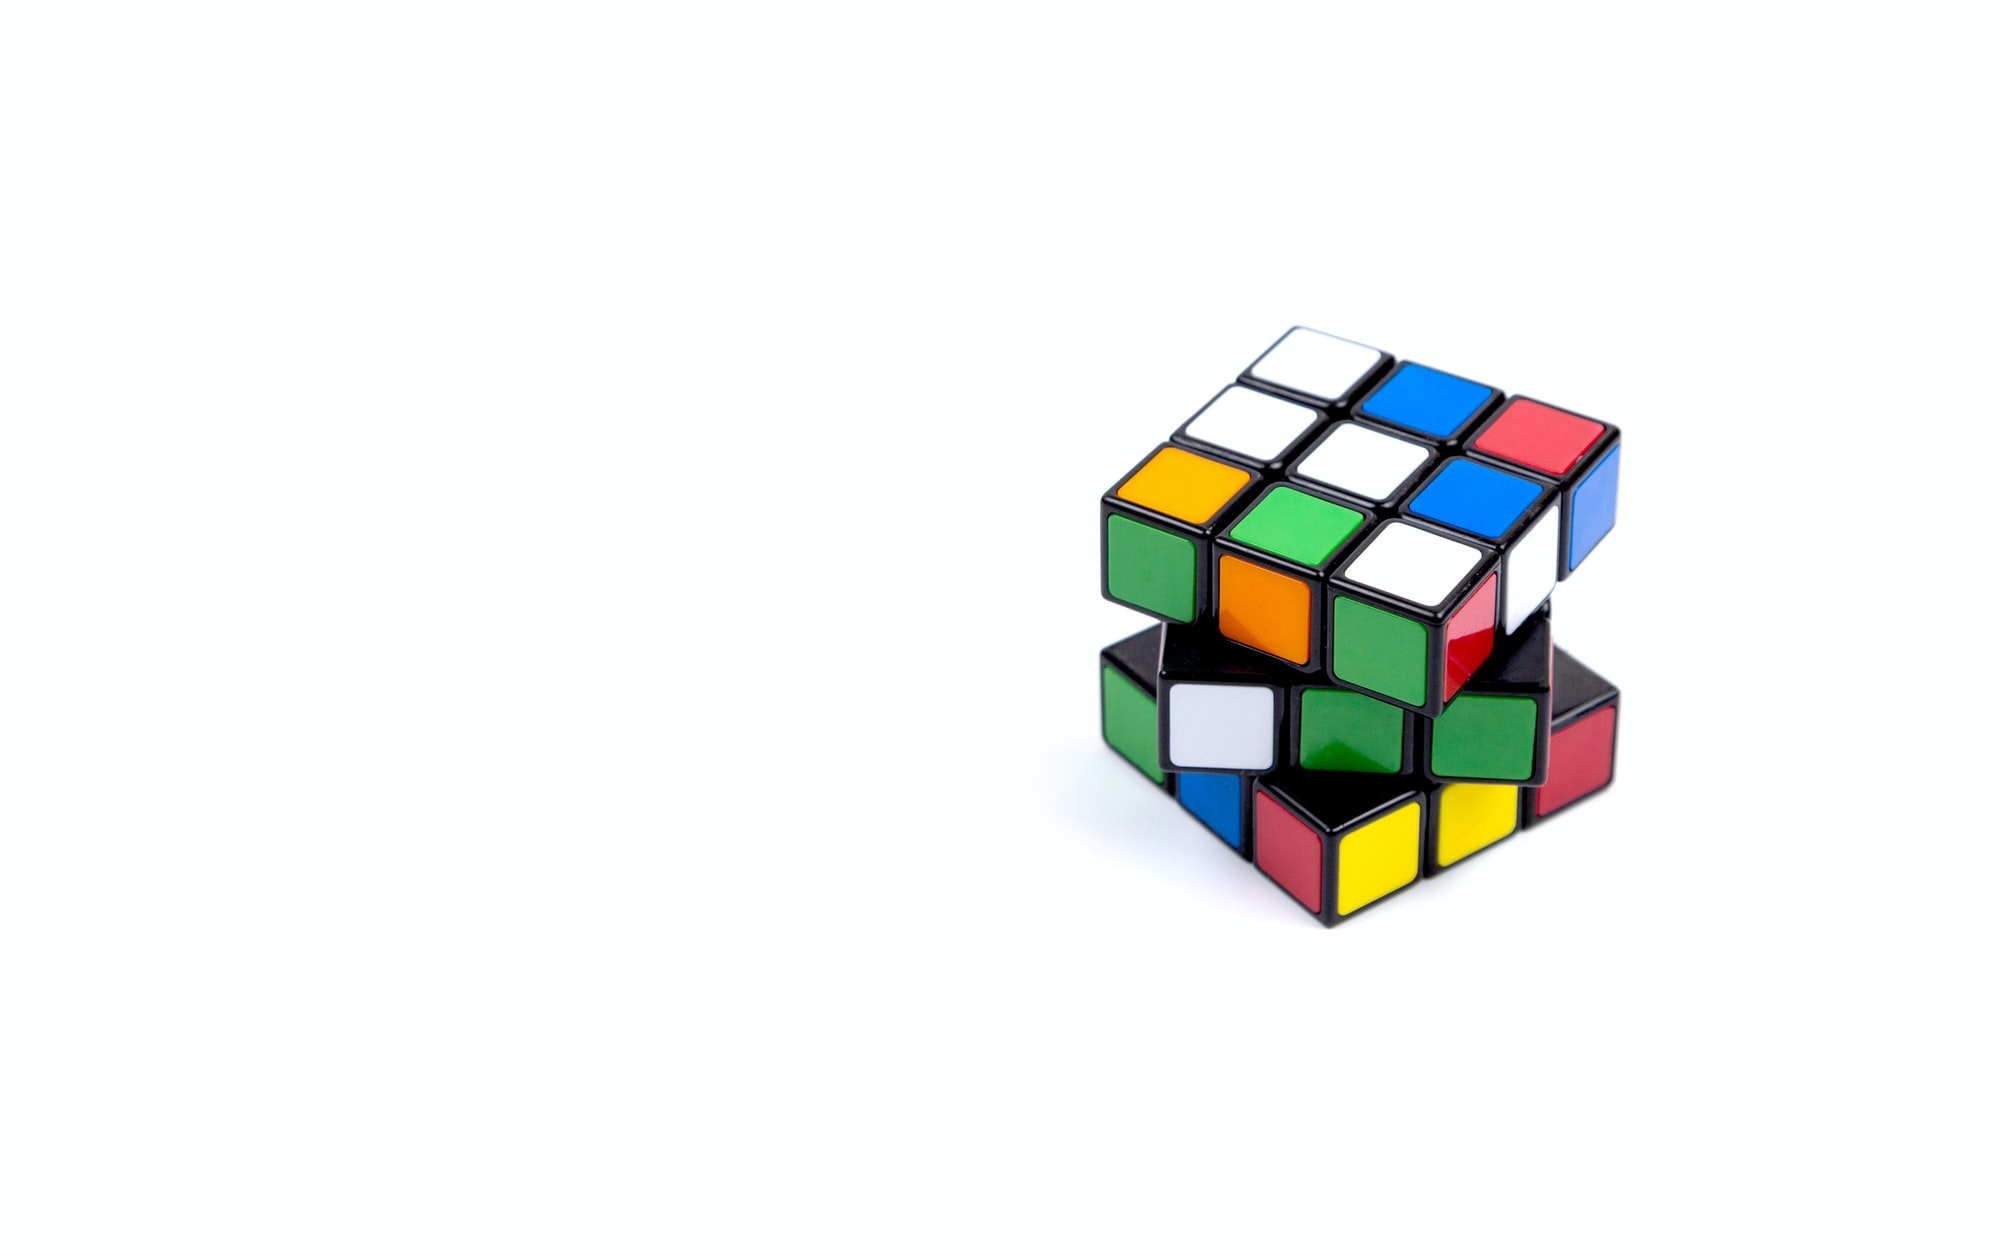 Game multi-coloured cube on a white background. Game concept with copy space for text